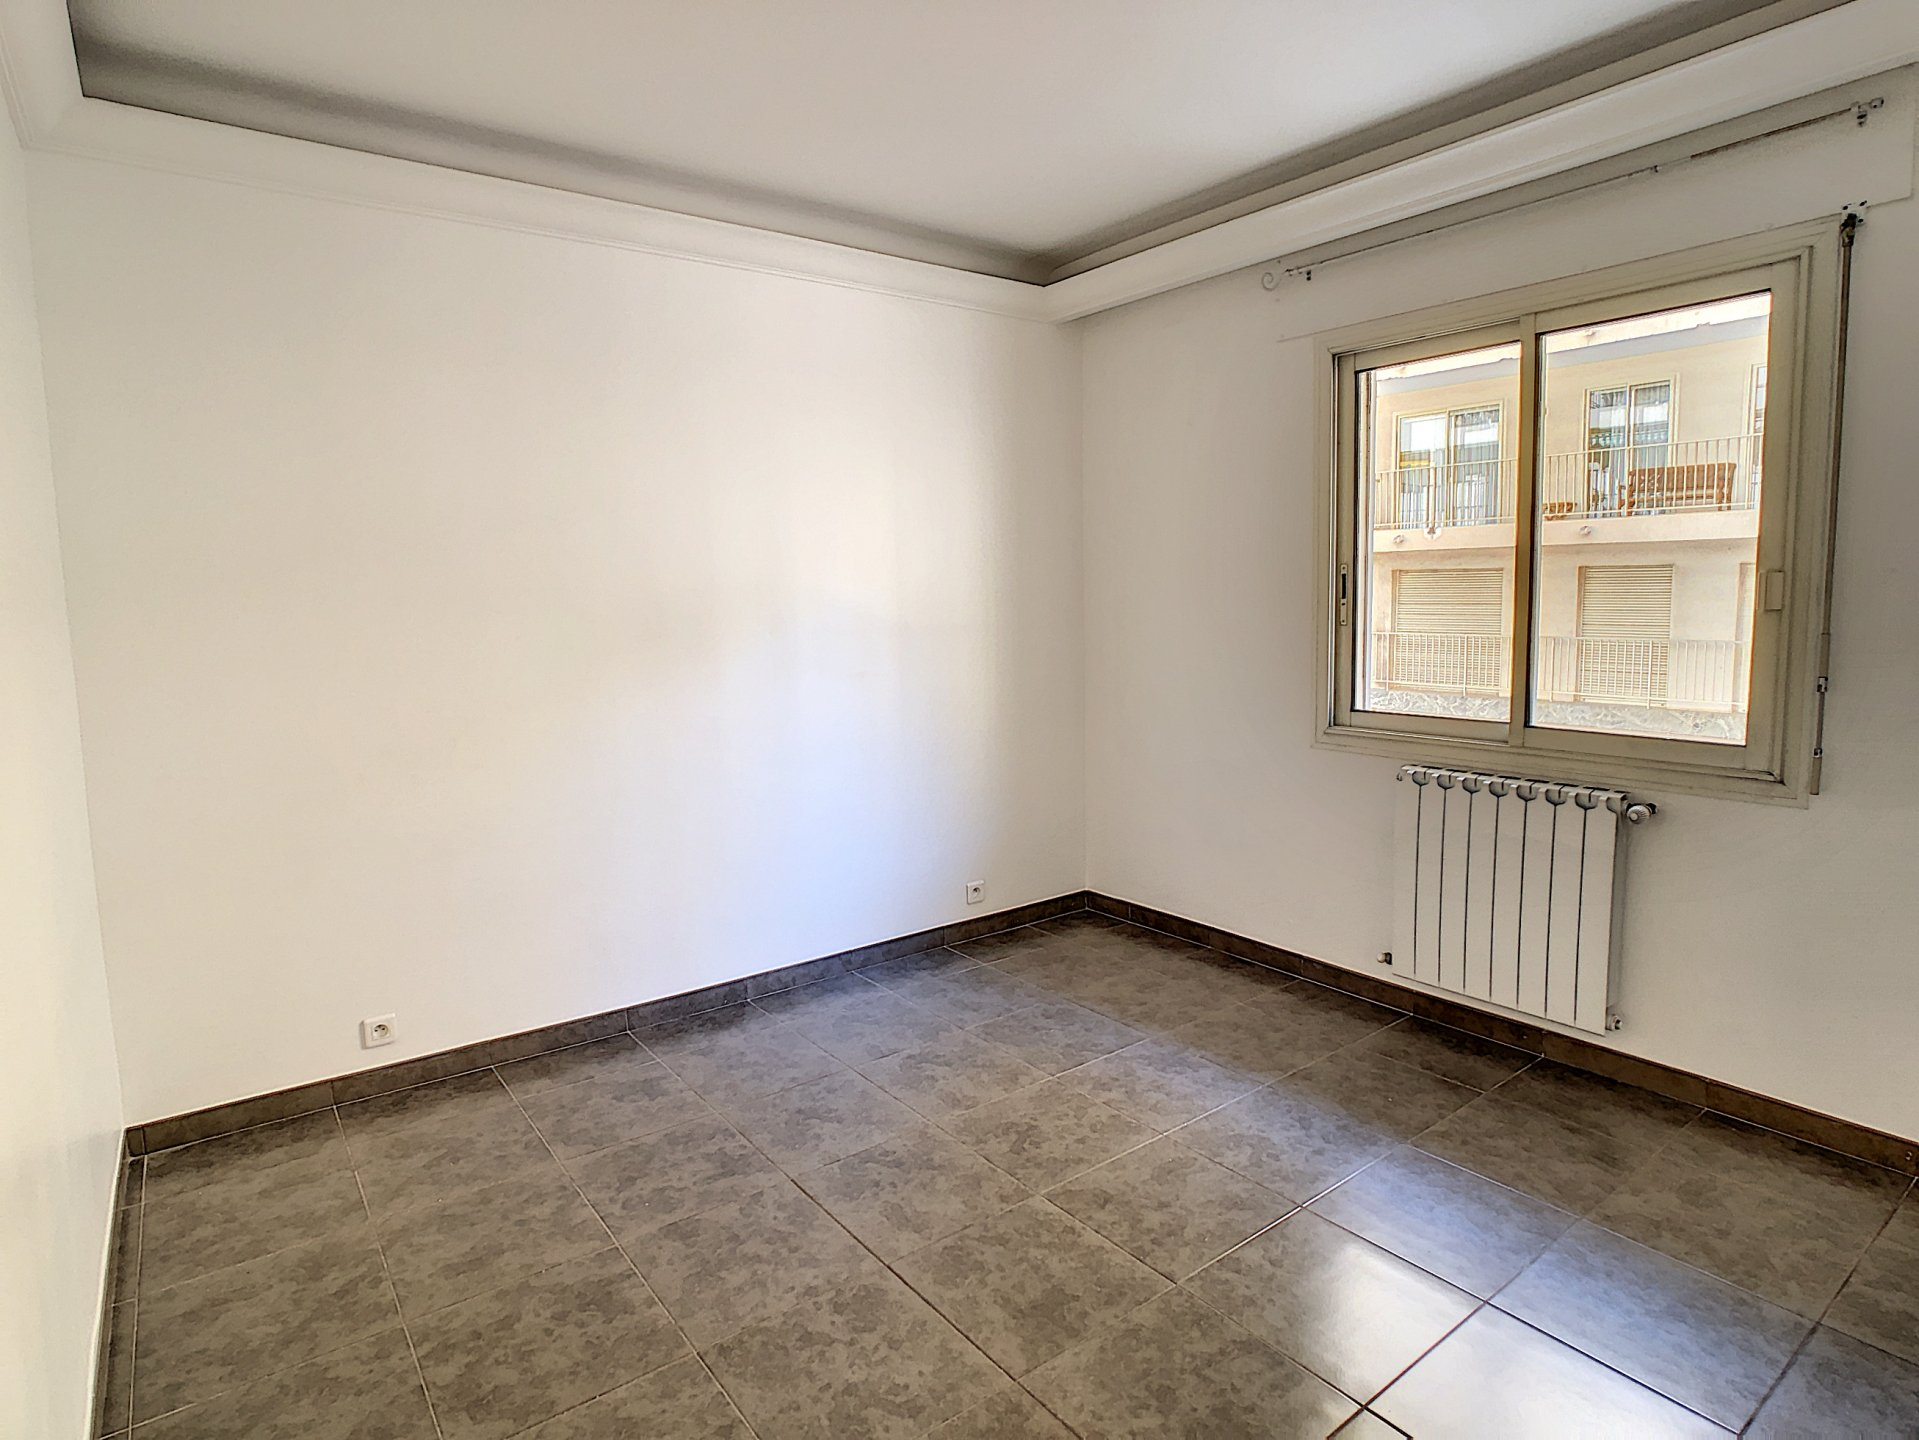 LARGE 3 BEDROOMS APARTMENT OF 86M ²